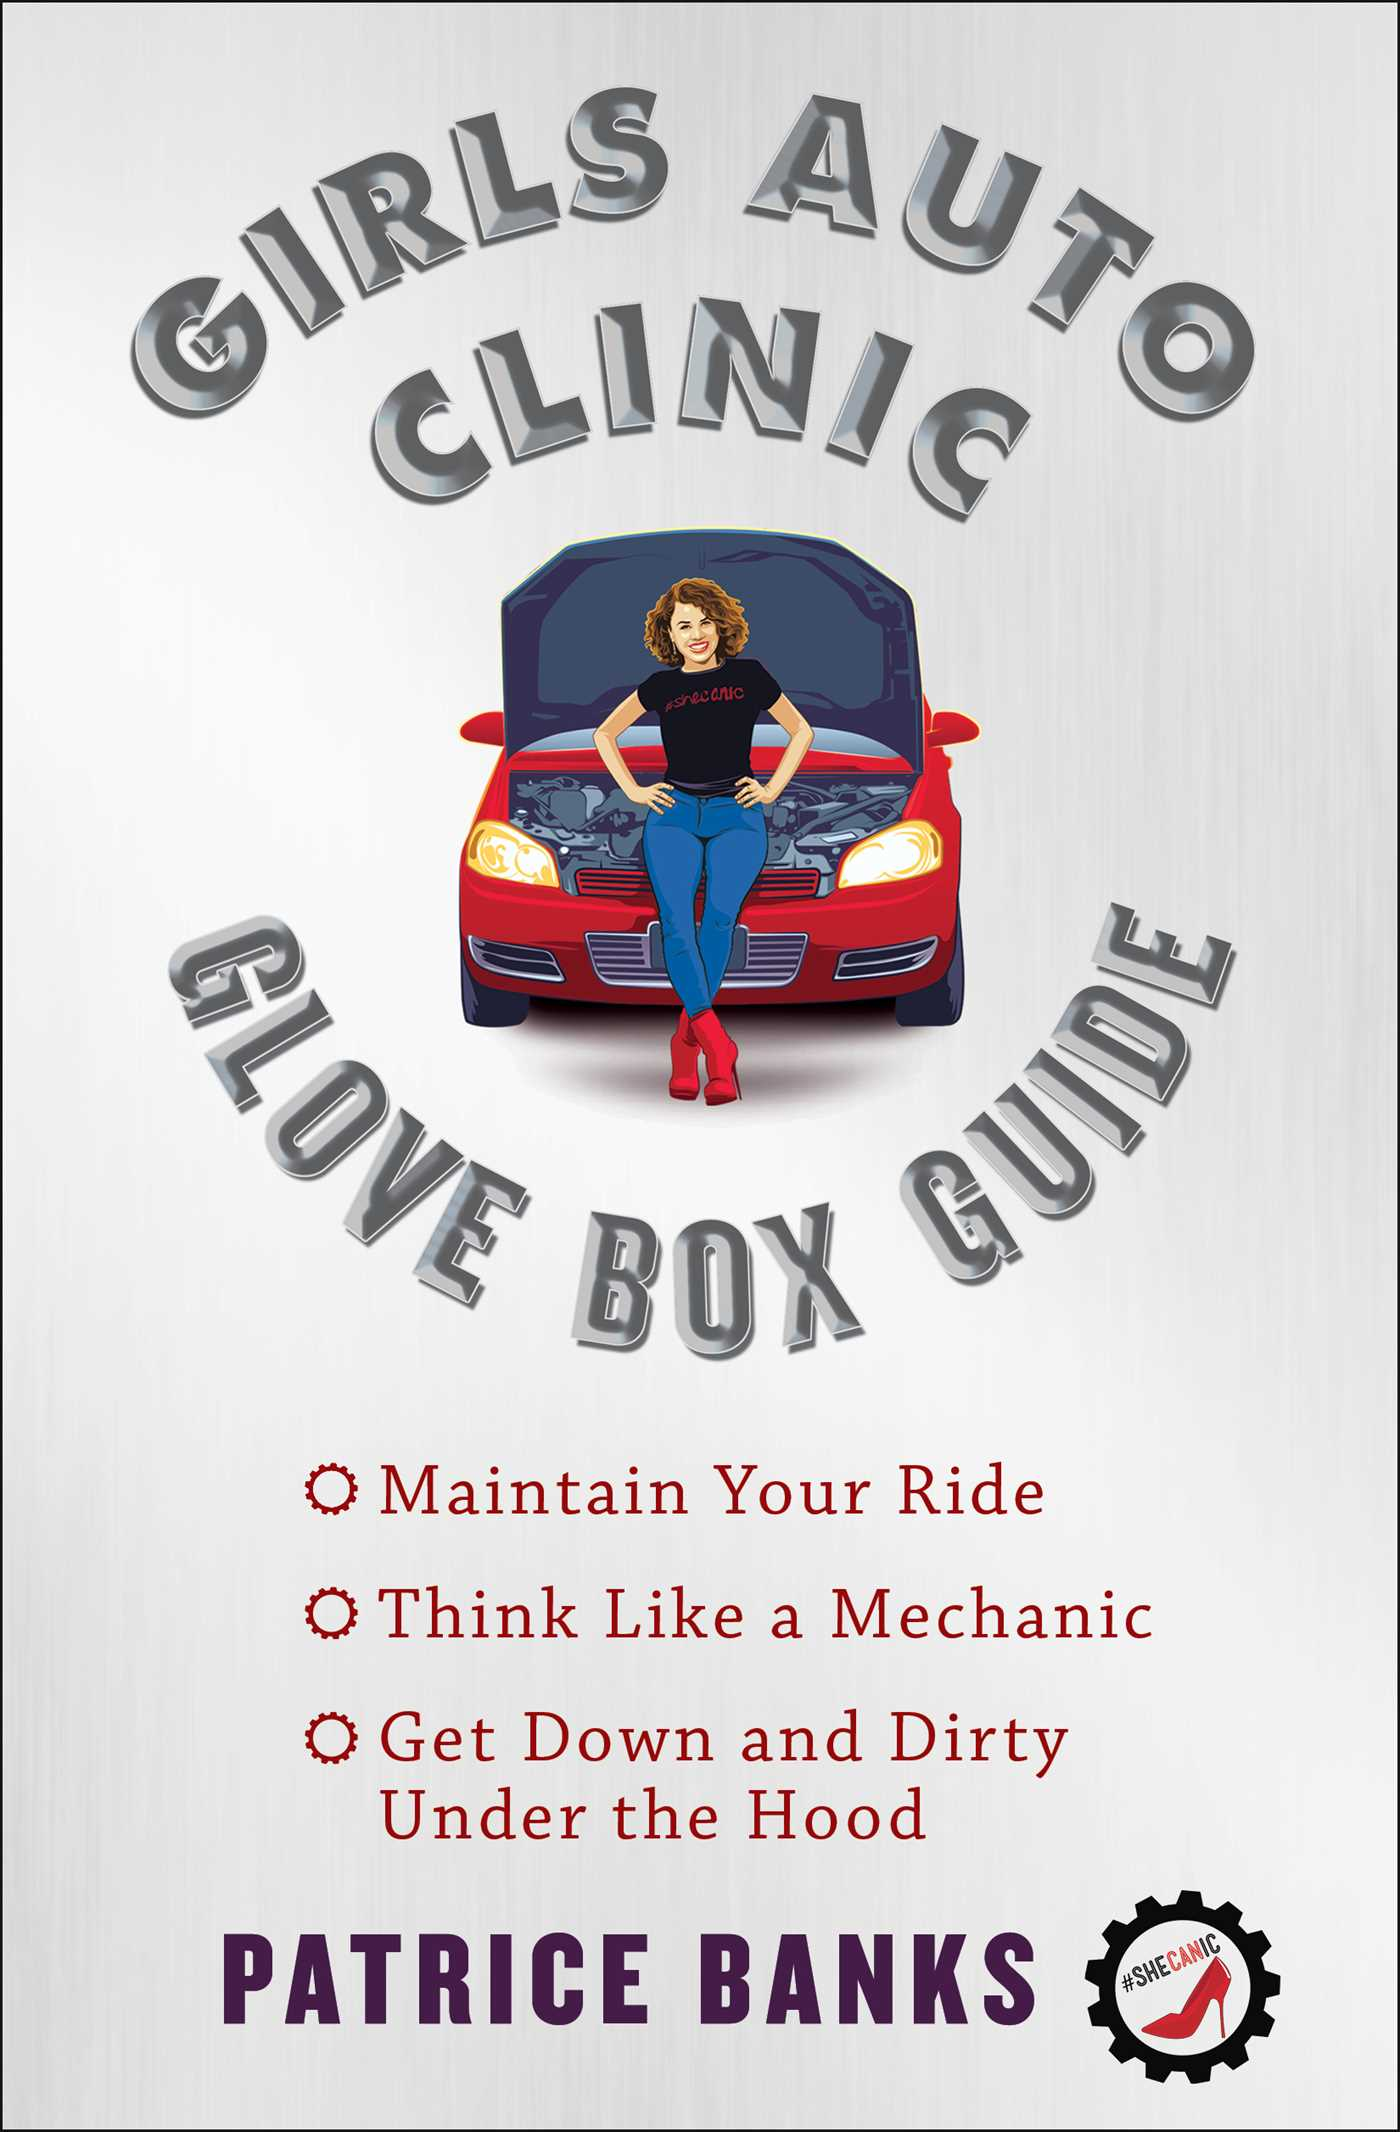 Girls auto clinic glove box guide 9781501144110 hr